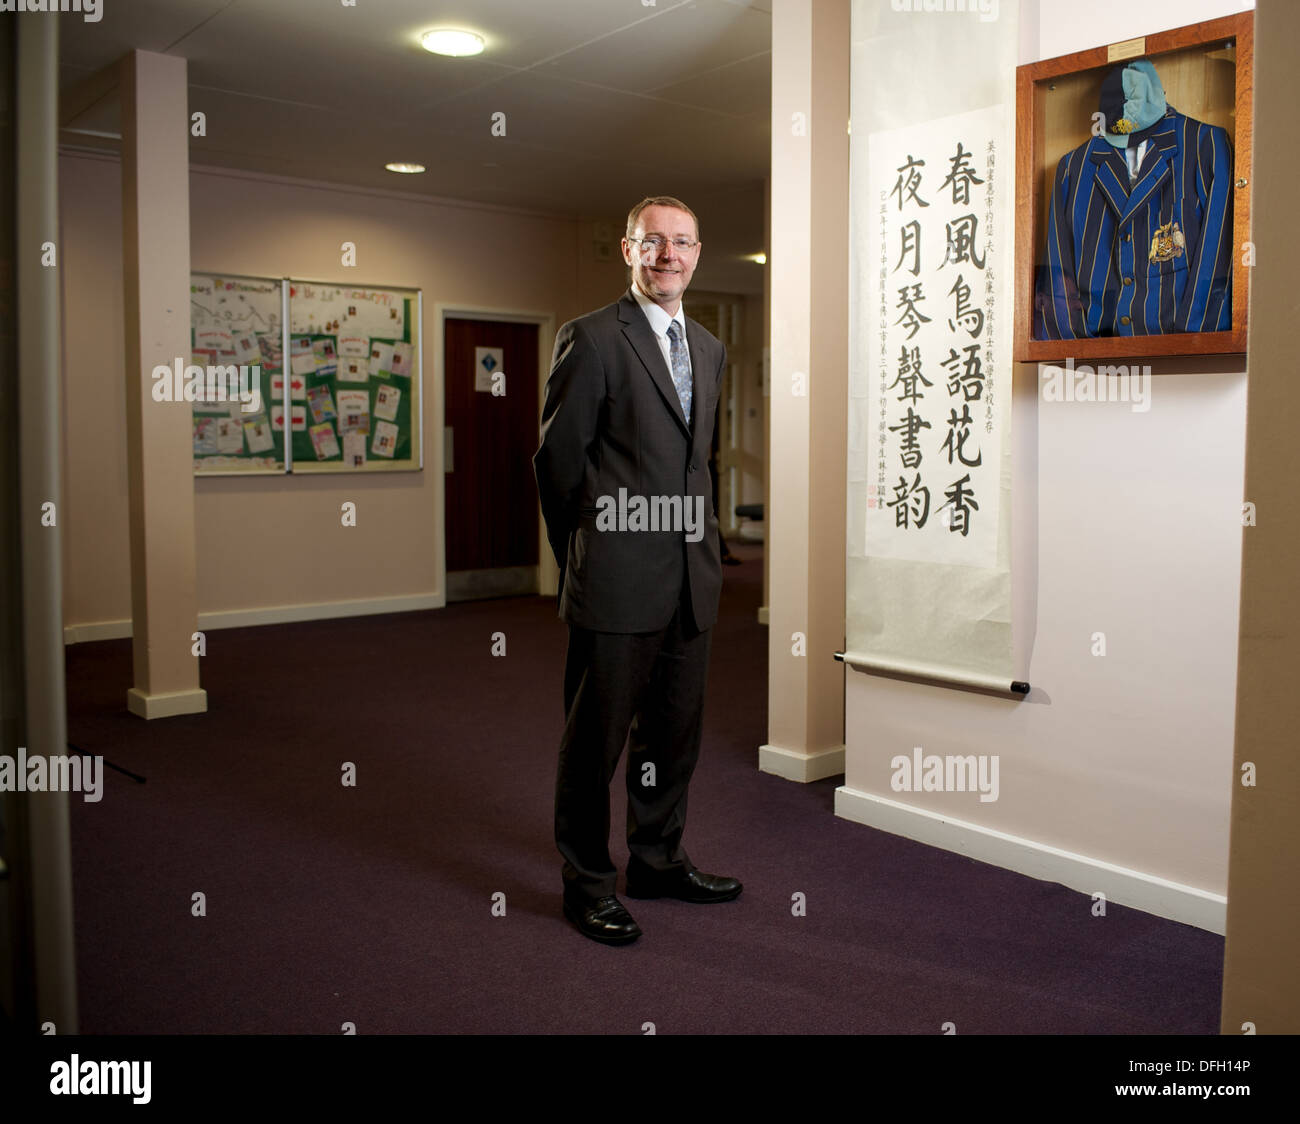 Dr Gary Holden Rochester, Kent who is widely regarded as a Super Headteacher and helps out Struggling schools - Stock Image